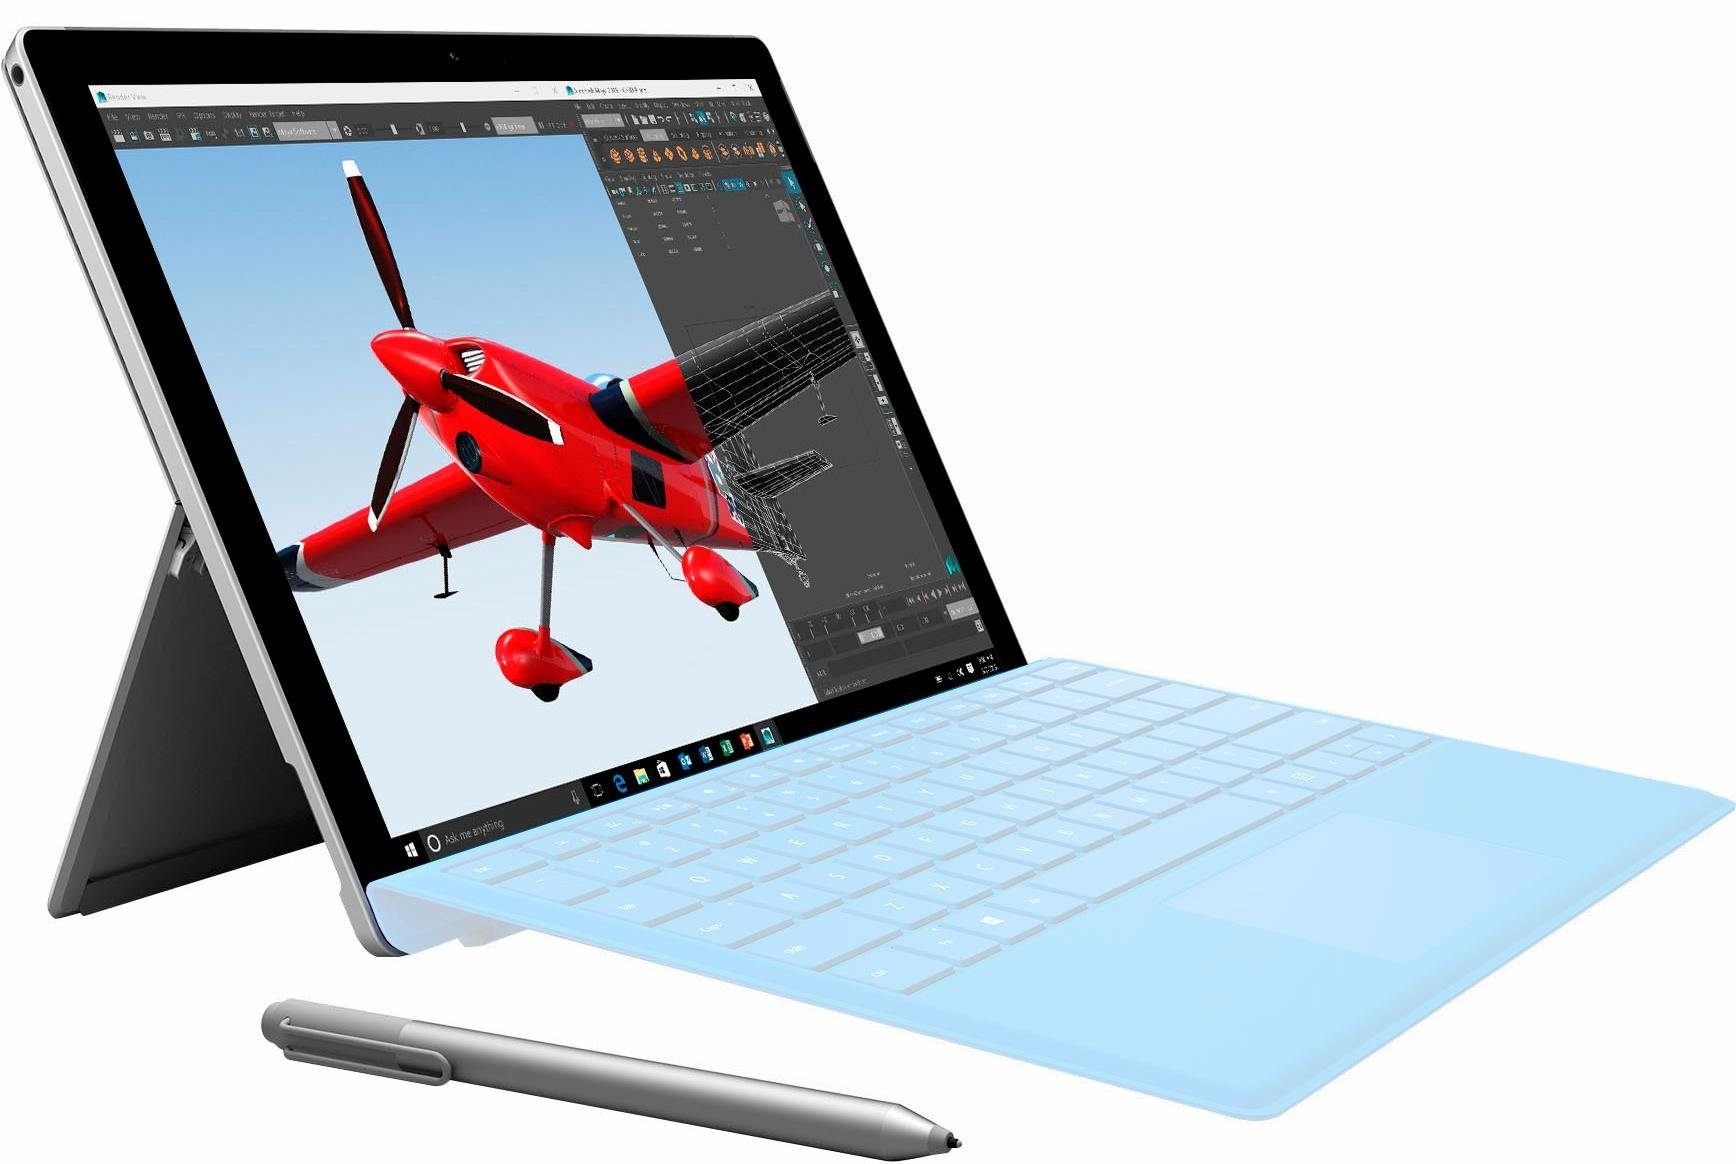 Microsoft Surface Pro 4 CR3-00003 Tablet-PC, Microsoft® Windows® 10 Pro, Intel Core i5